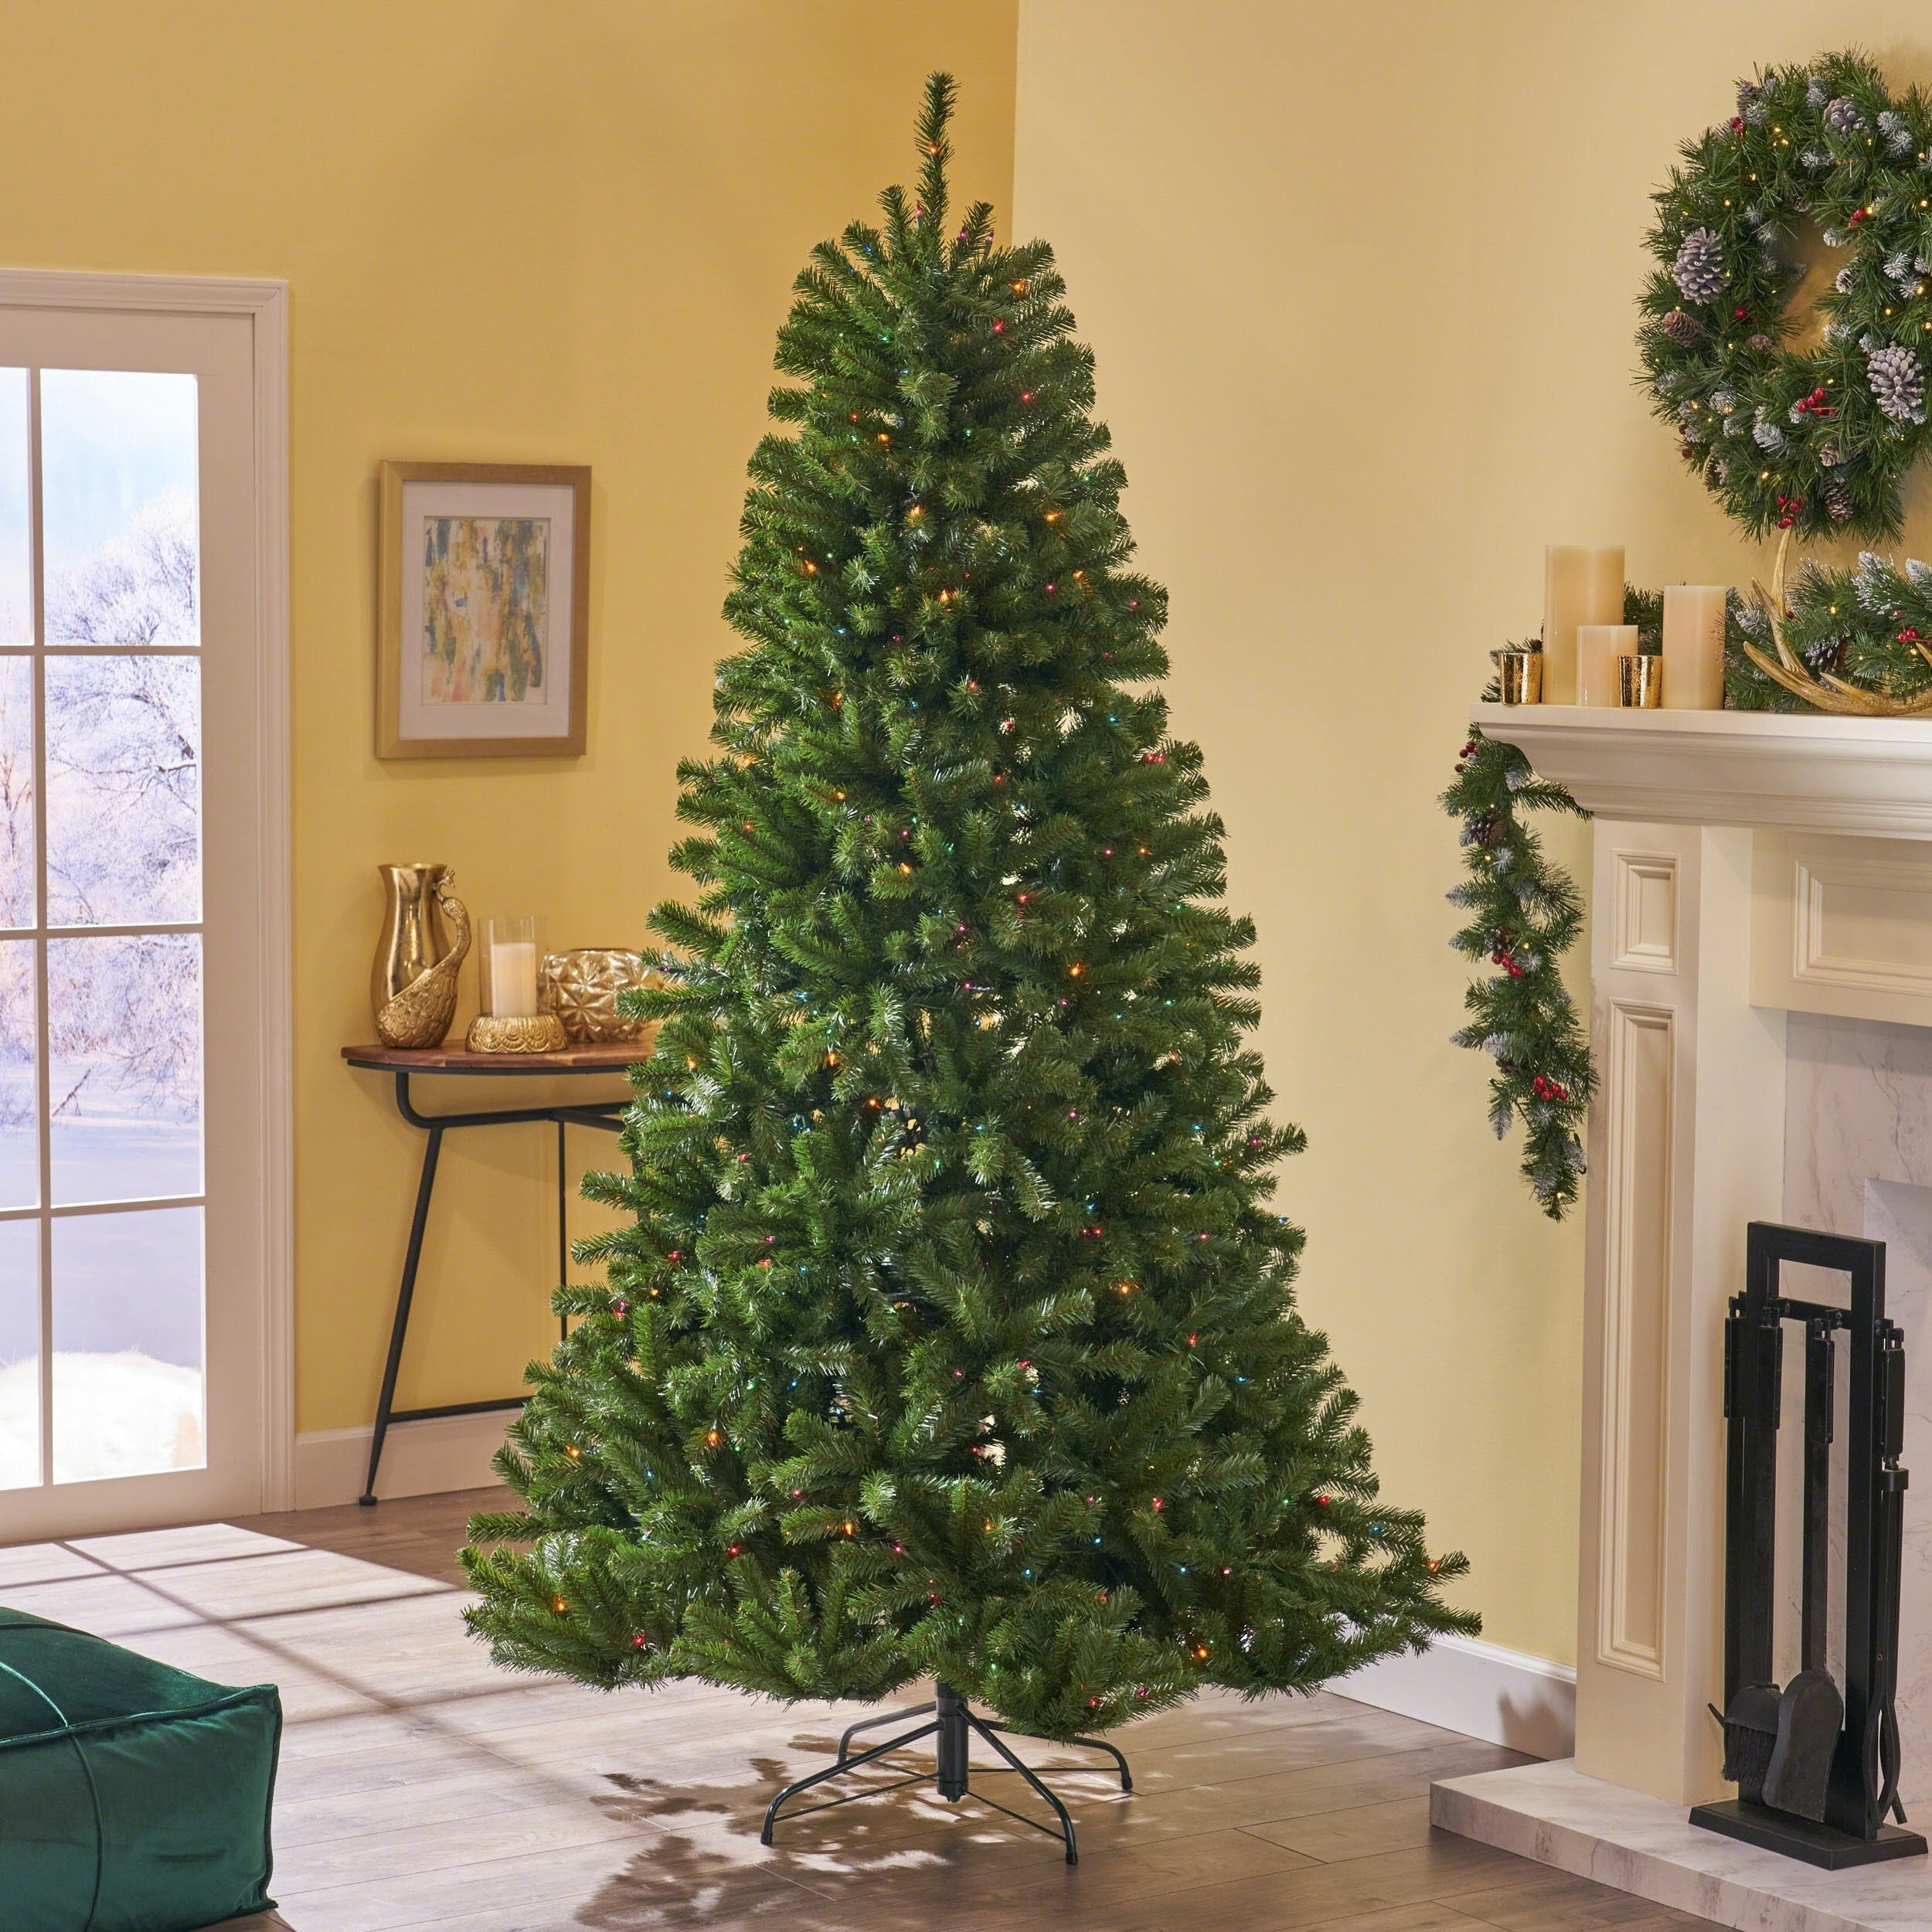 Noble Fir Christmas Tree.7 Ft Noble Fir Pre Lit Or Unlit Hinged Artificial Christmas Tree By Christopher Knight Home